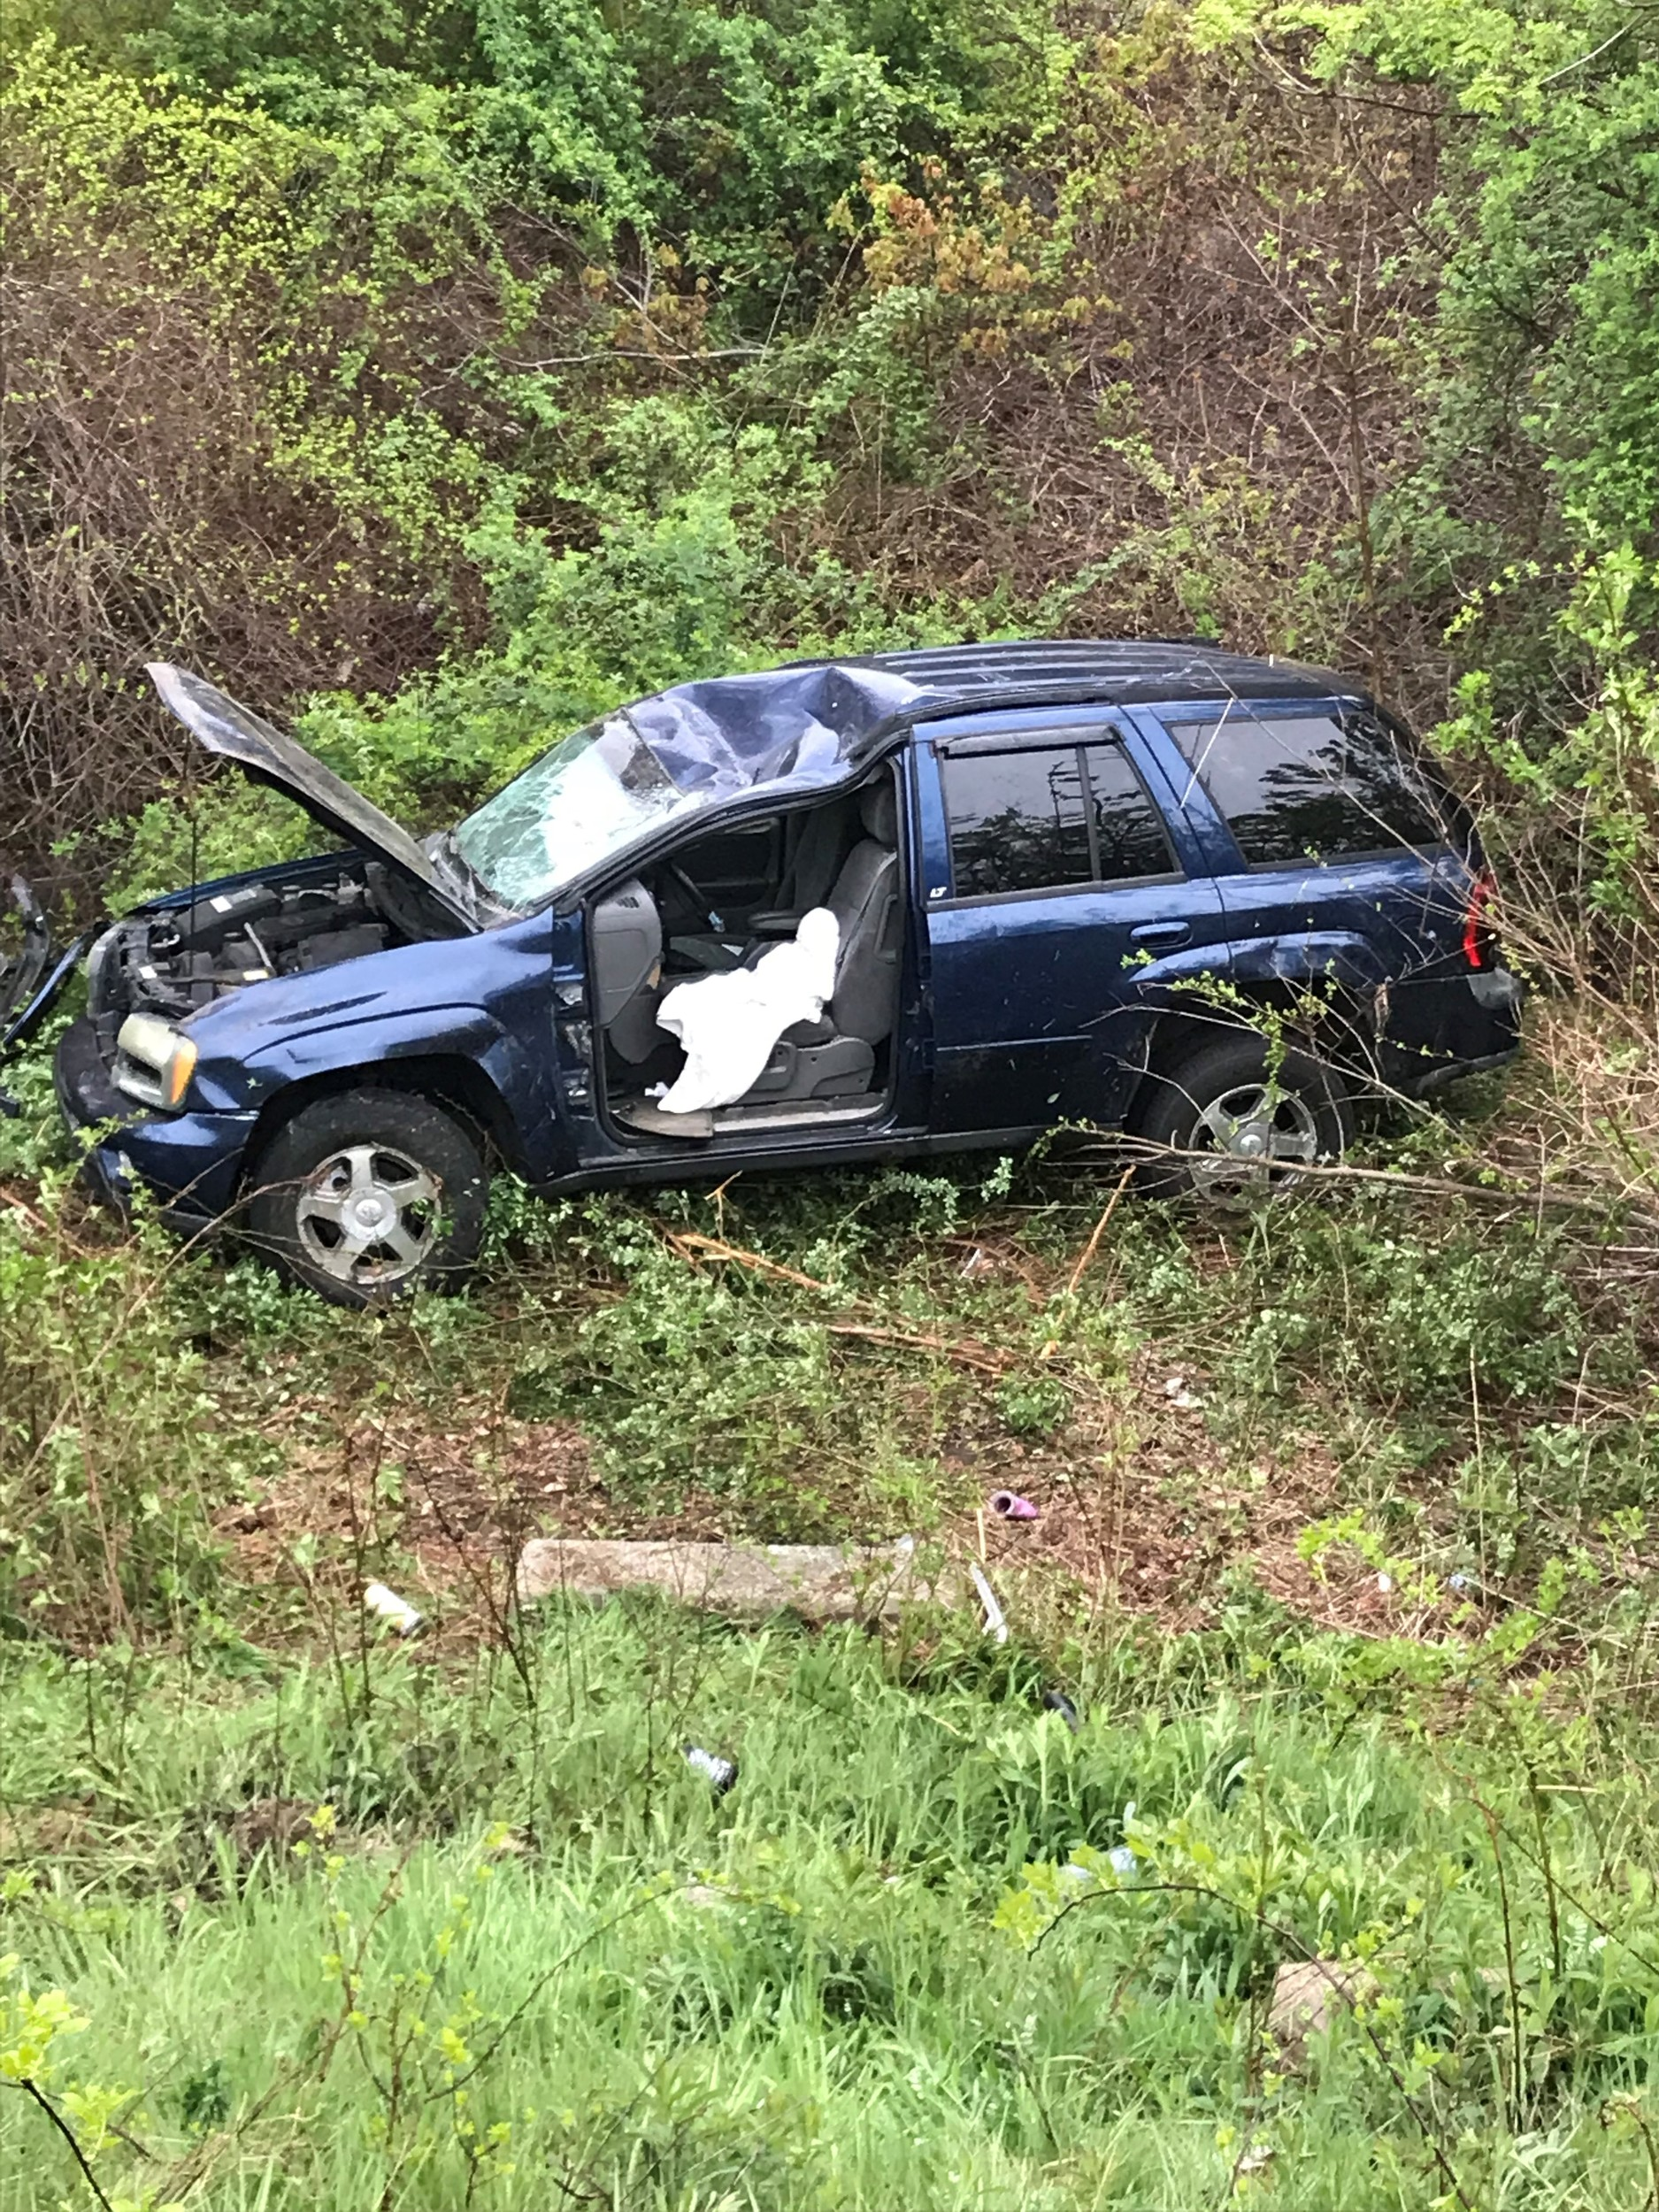 Portsmouth firefighters use Jaws of Life to free driver after crash